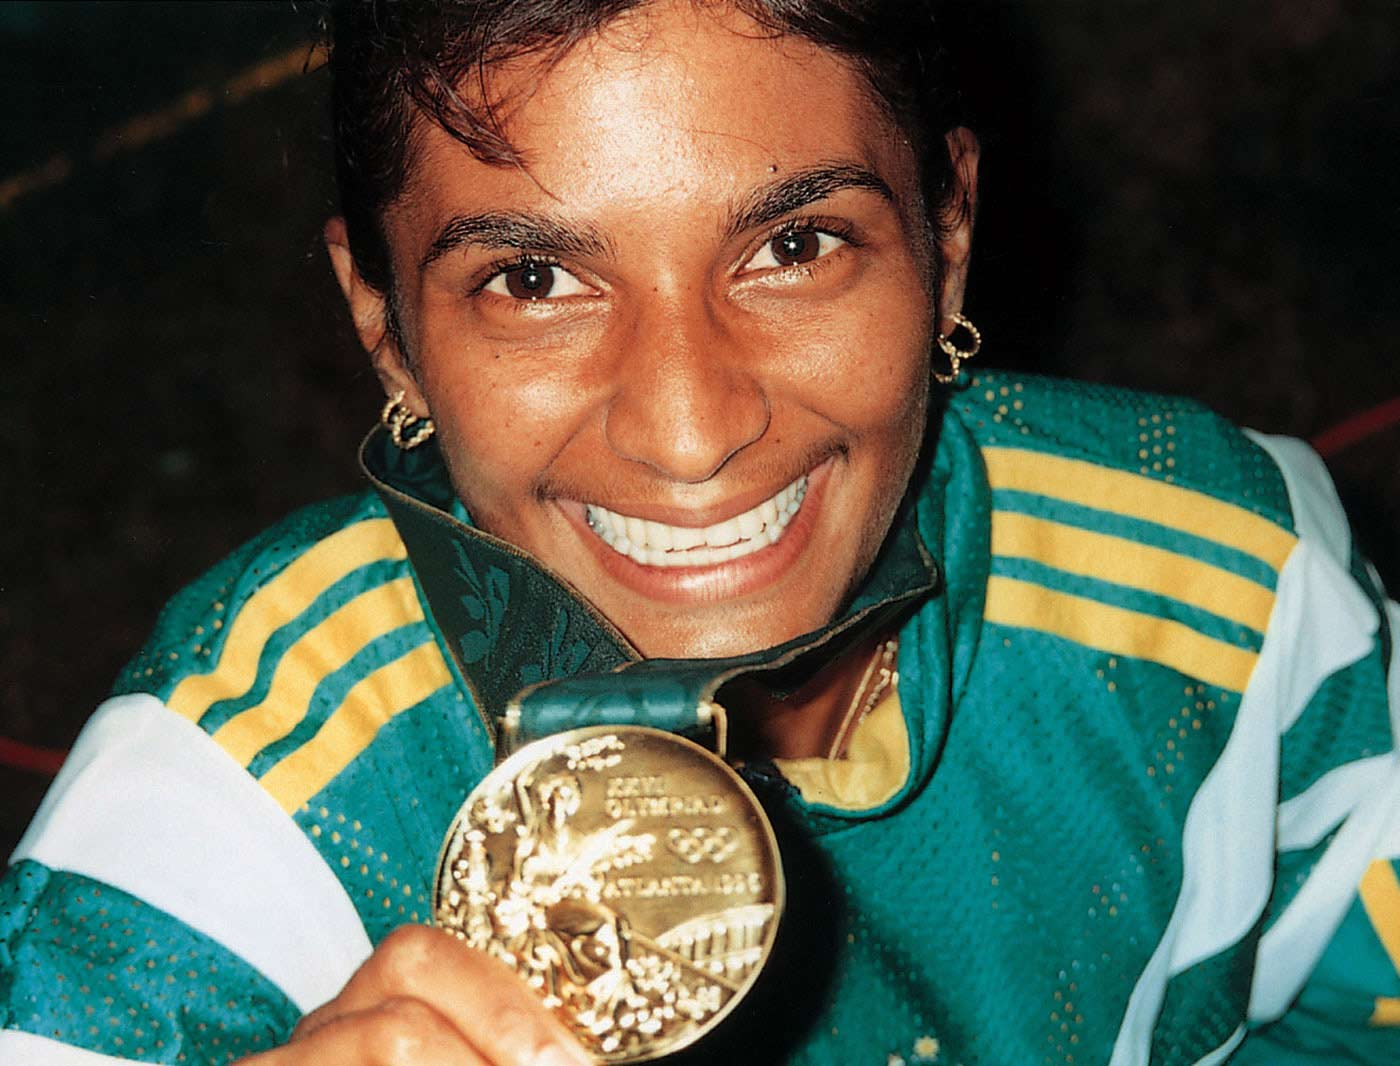 A smiling woman wearing green and gold tracksuits holds a gold medal.